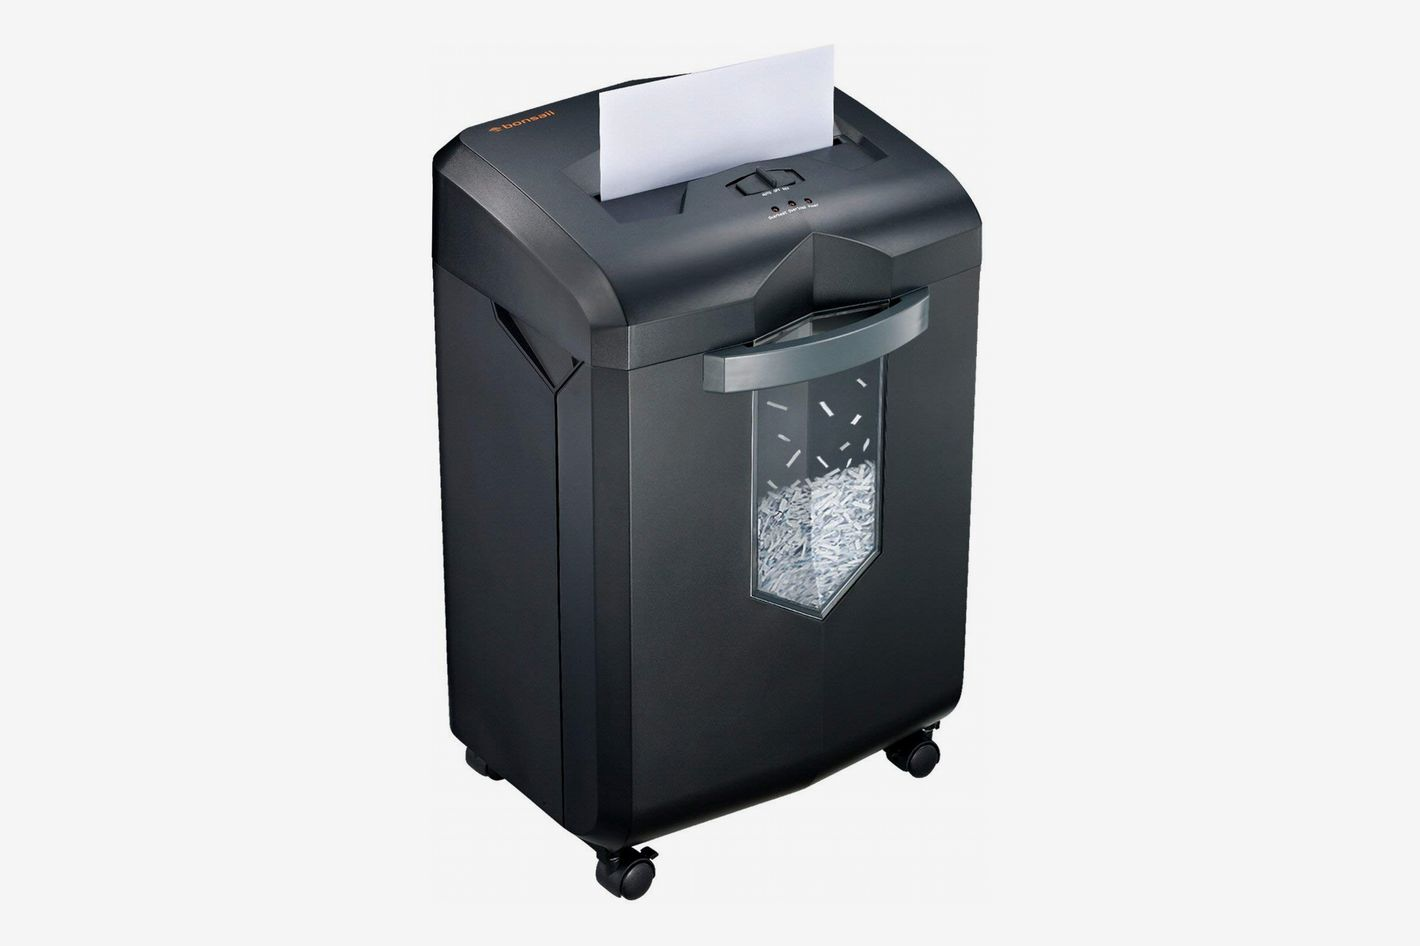 Bonsaii EverShred 18-Sheet Cross-Cut Shredder with 6 Gallon Pullout Basket, 60 Minutes Running Time